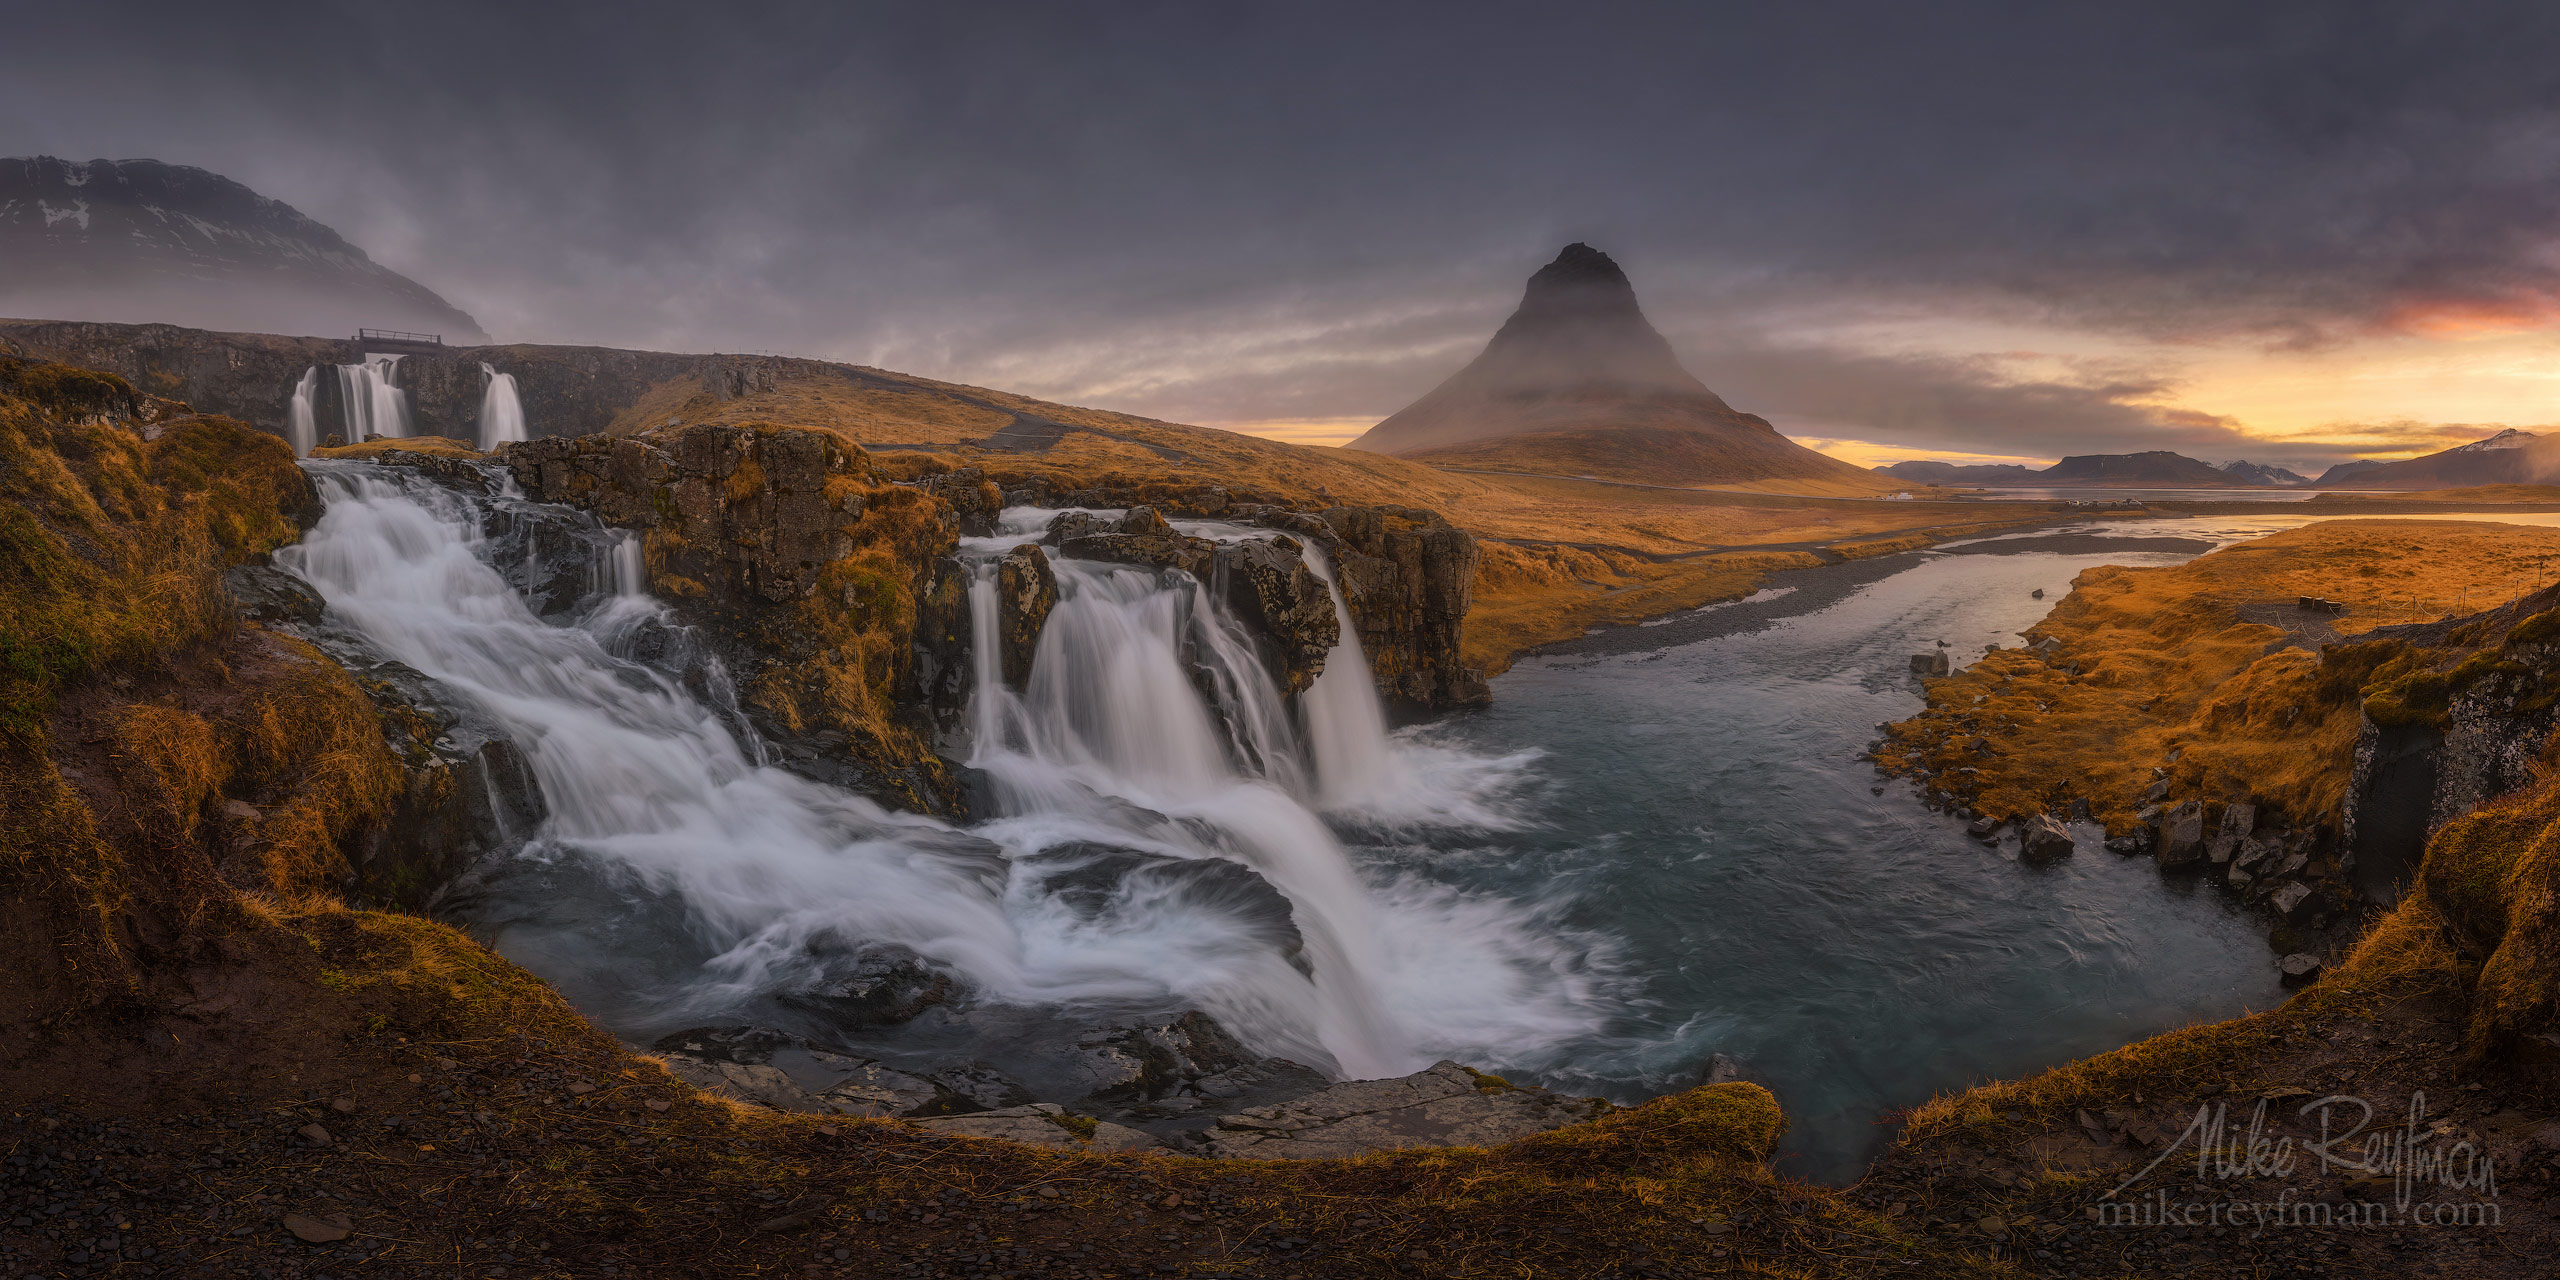 Church Mountain Falls. Well-situated waterfall near the distinctive Kirkjufell mountain. P12-M10P4485-Pano_1x2 - Selected panoramic images with 2:1 aspect ratio - Mike Reyfman Photography